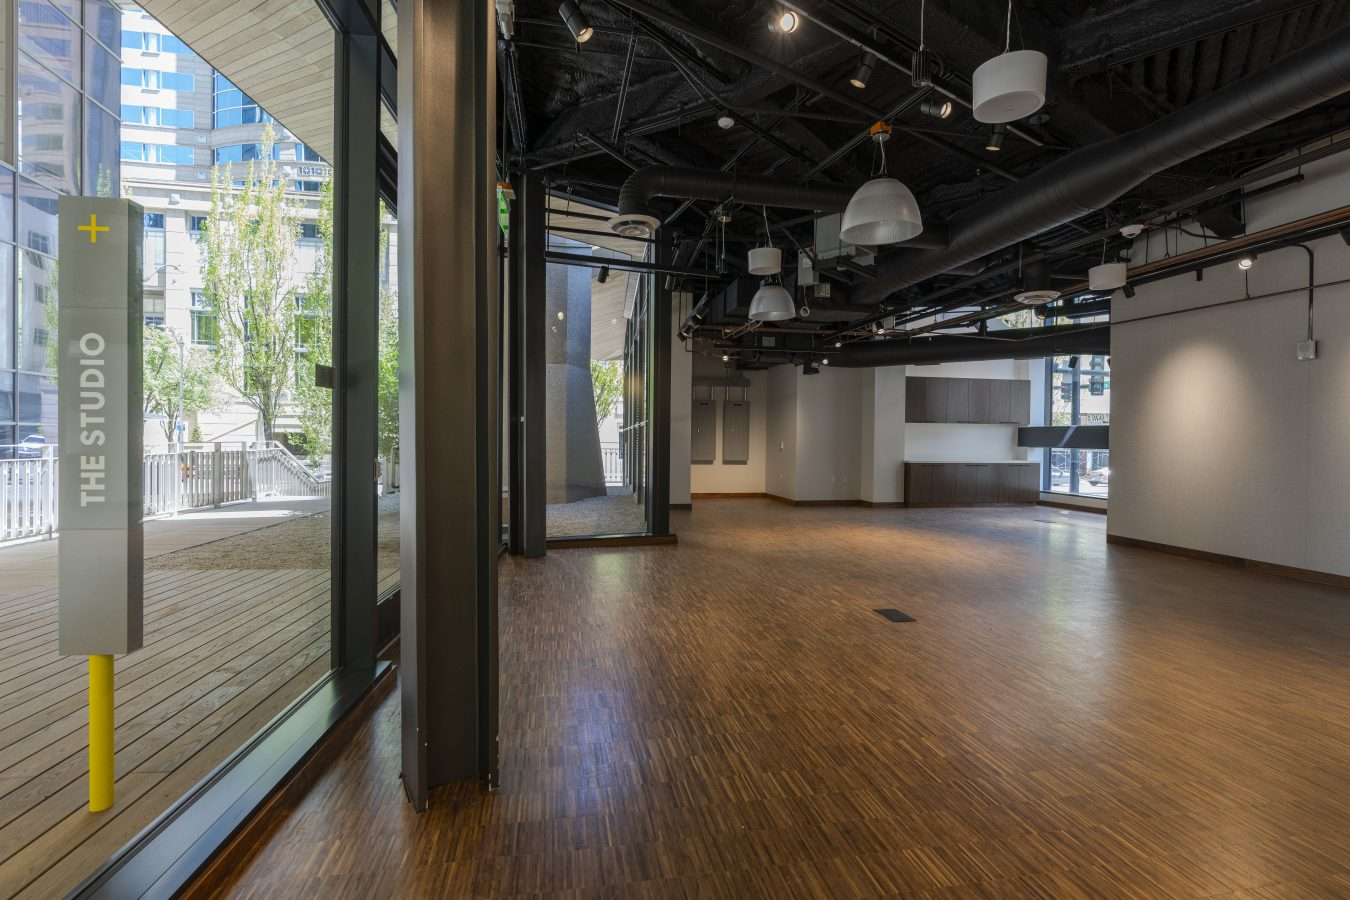 The Studio is 1100 square feet, has hardwood floors, a single restroom, and Blue-tooth enabled sound system